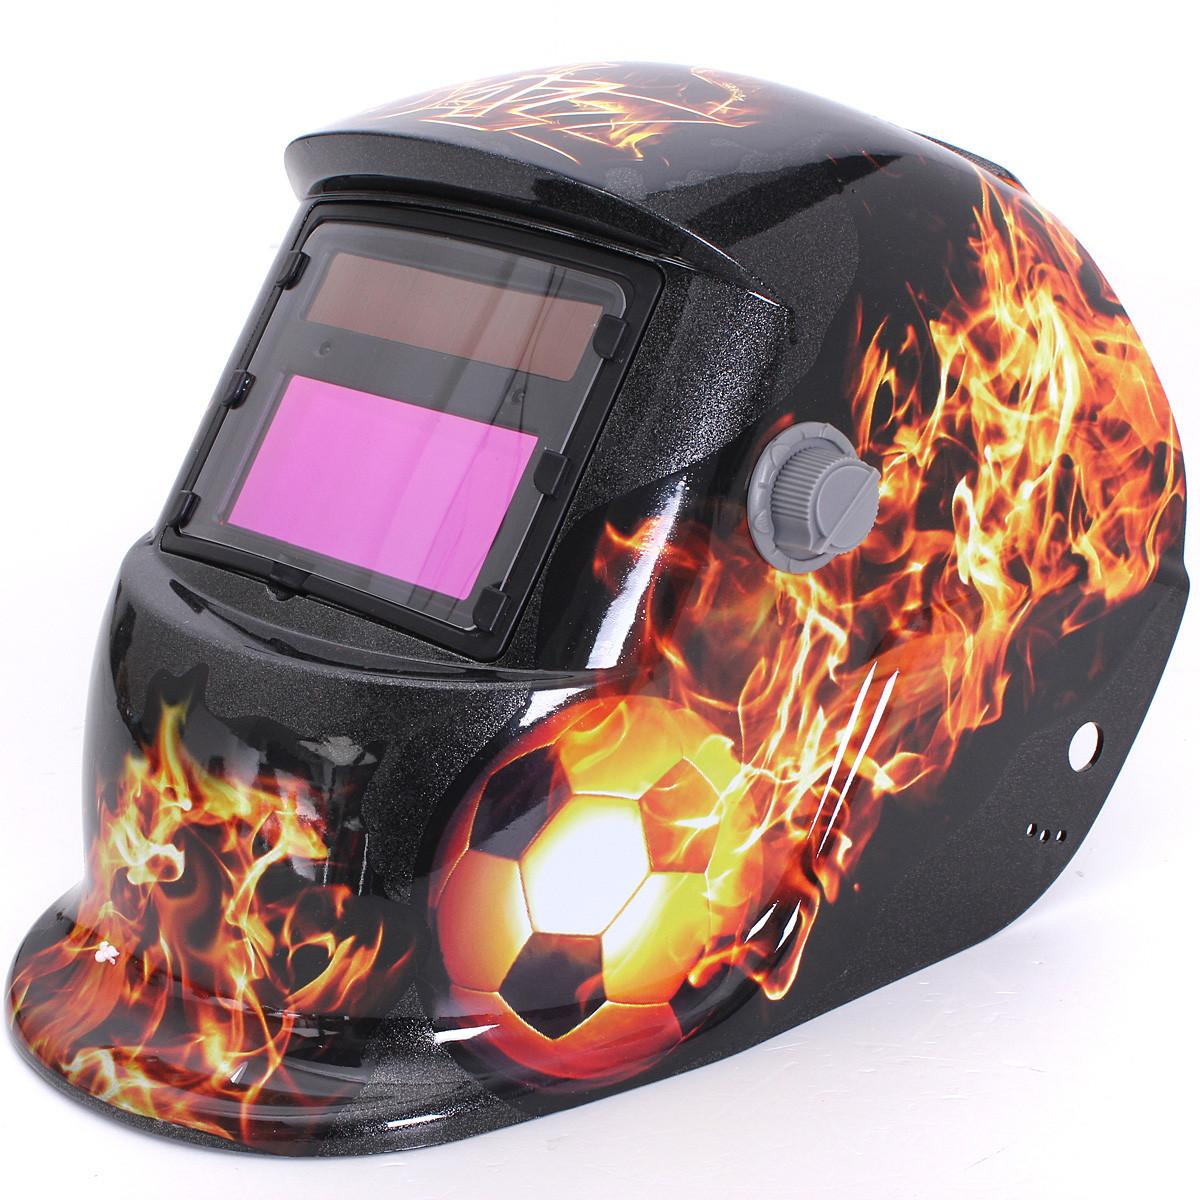 NEW Pro Auto Darkening Welding Helmet Arc Tig mig Grinding Welders Mask Solar no 1 for free post welder helmet fully automatic auto darkening mig tig mag arc welding helmet mask plasma cutter chrome